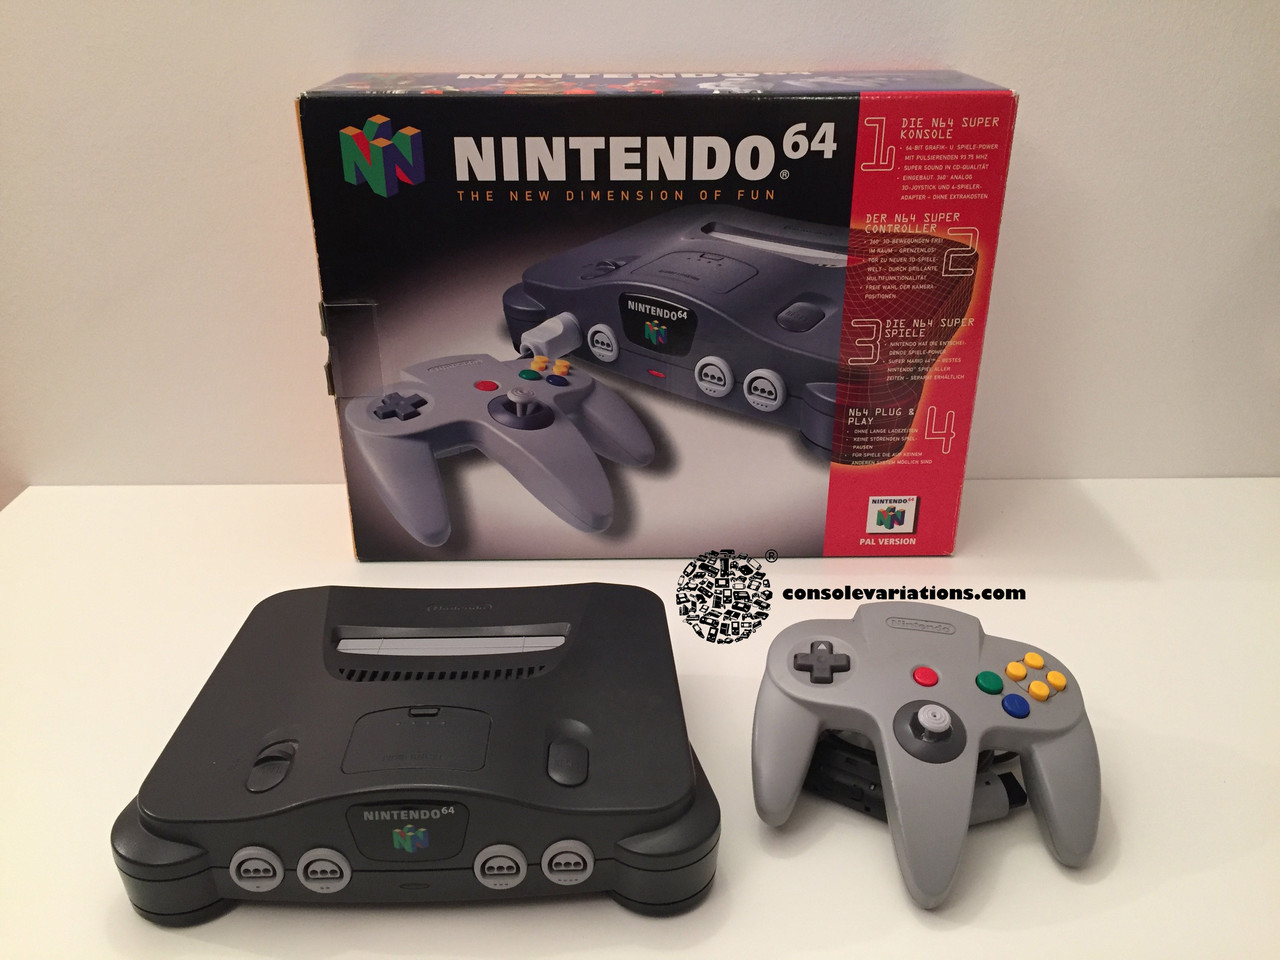 Nintendo 64 console variations the database for all console colors and variations - Super nintendo 64 console ...